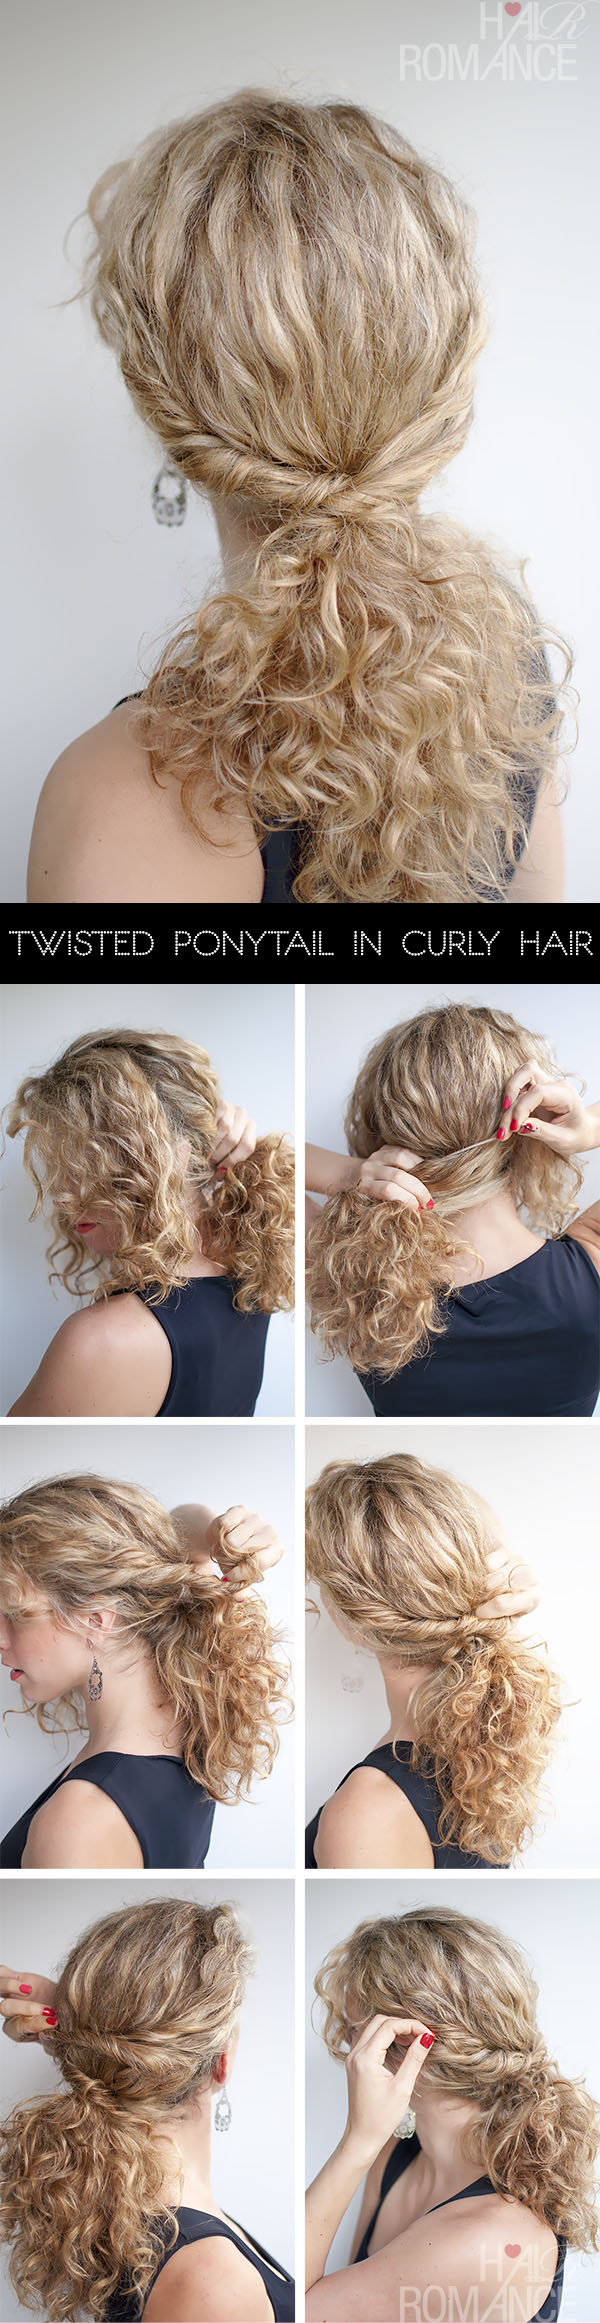 Curly Hairstyle Tutorial The Twist Over Ponytail Hair Romance